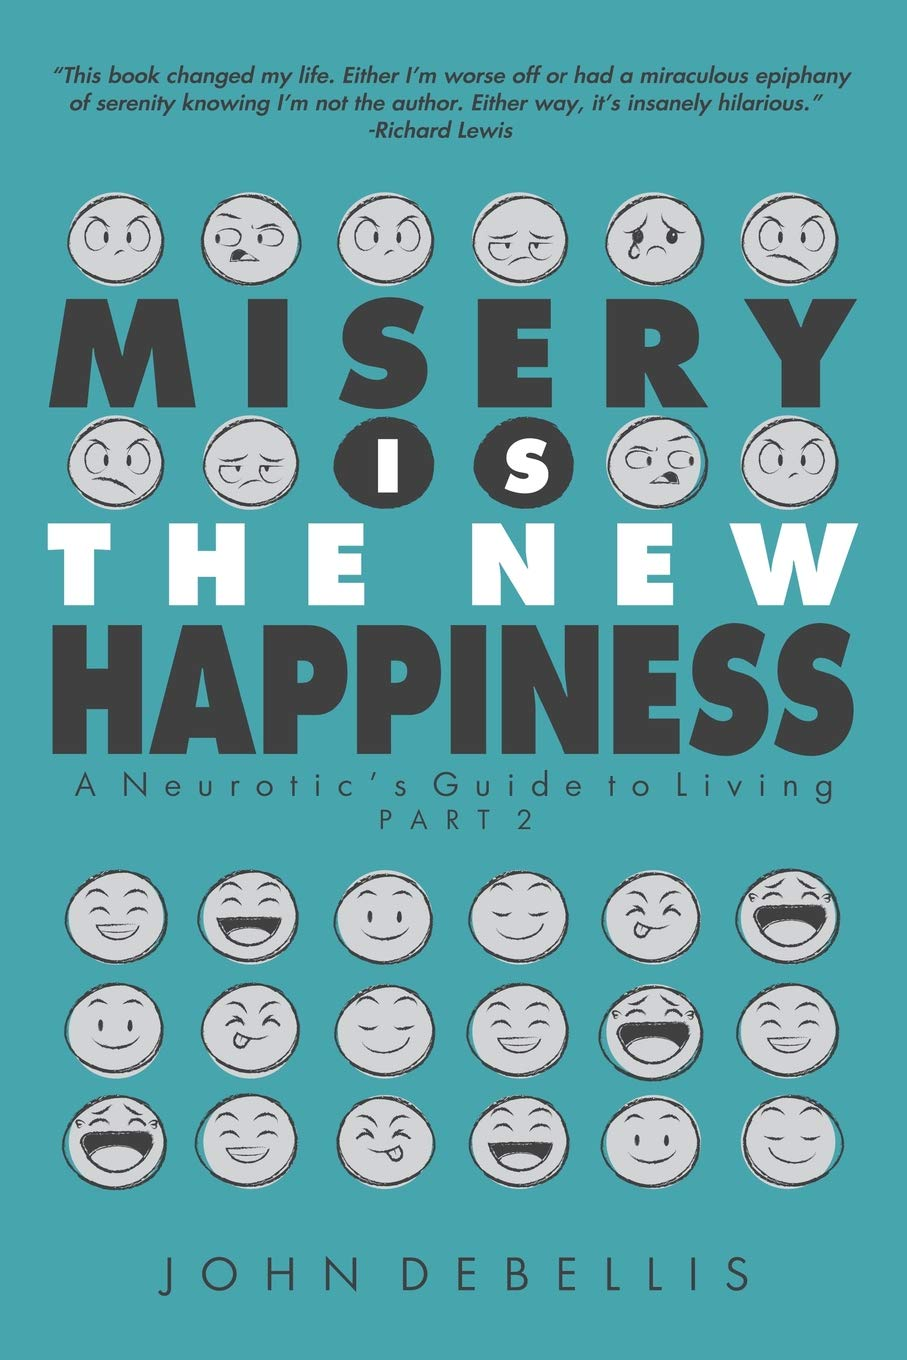 MISERY IS THE NEW HAPPINESS: The Neurotic's Guide to Living - Book 2: John  DeBellis: 9781632638977: Amazon.com: Books